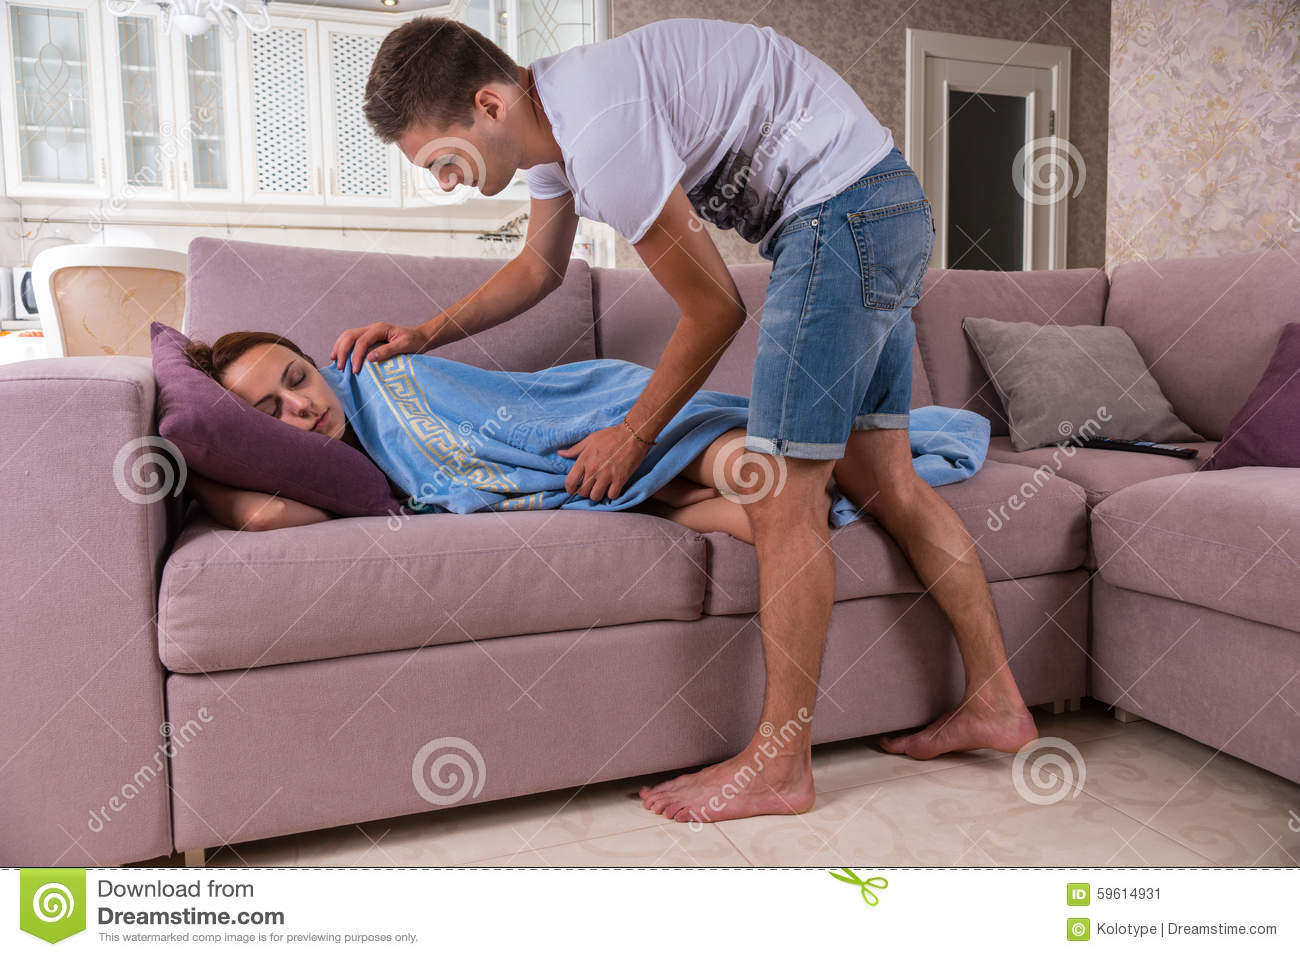 With you Wife sleeping on sofa with you